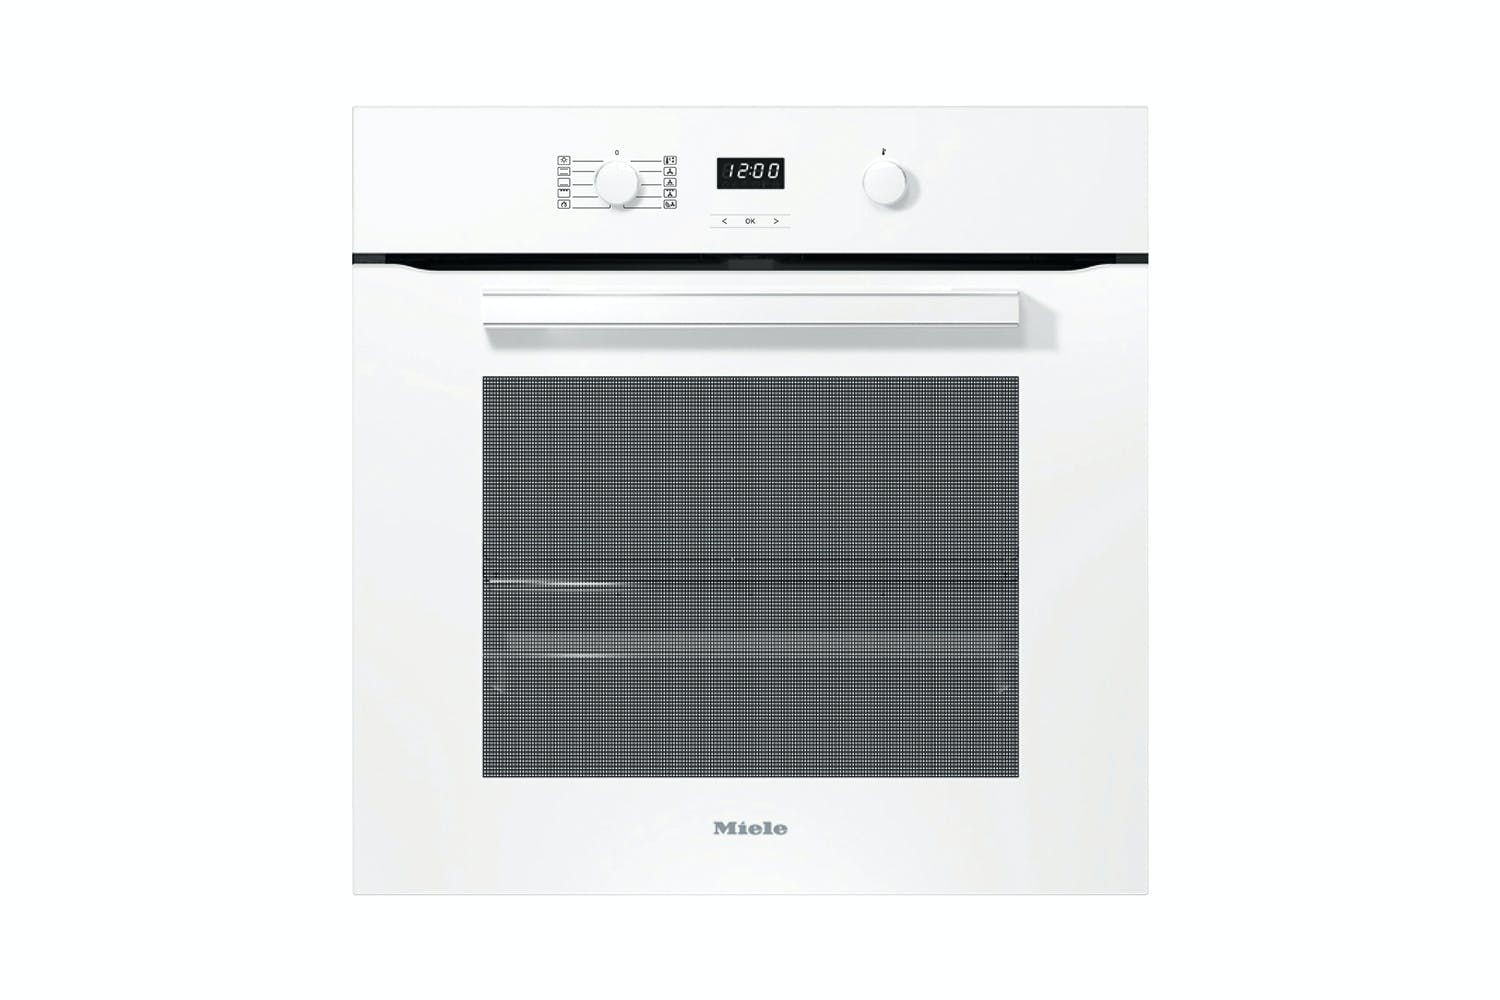 Image of Miele 60cm Pyrolytic Oven